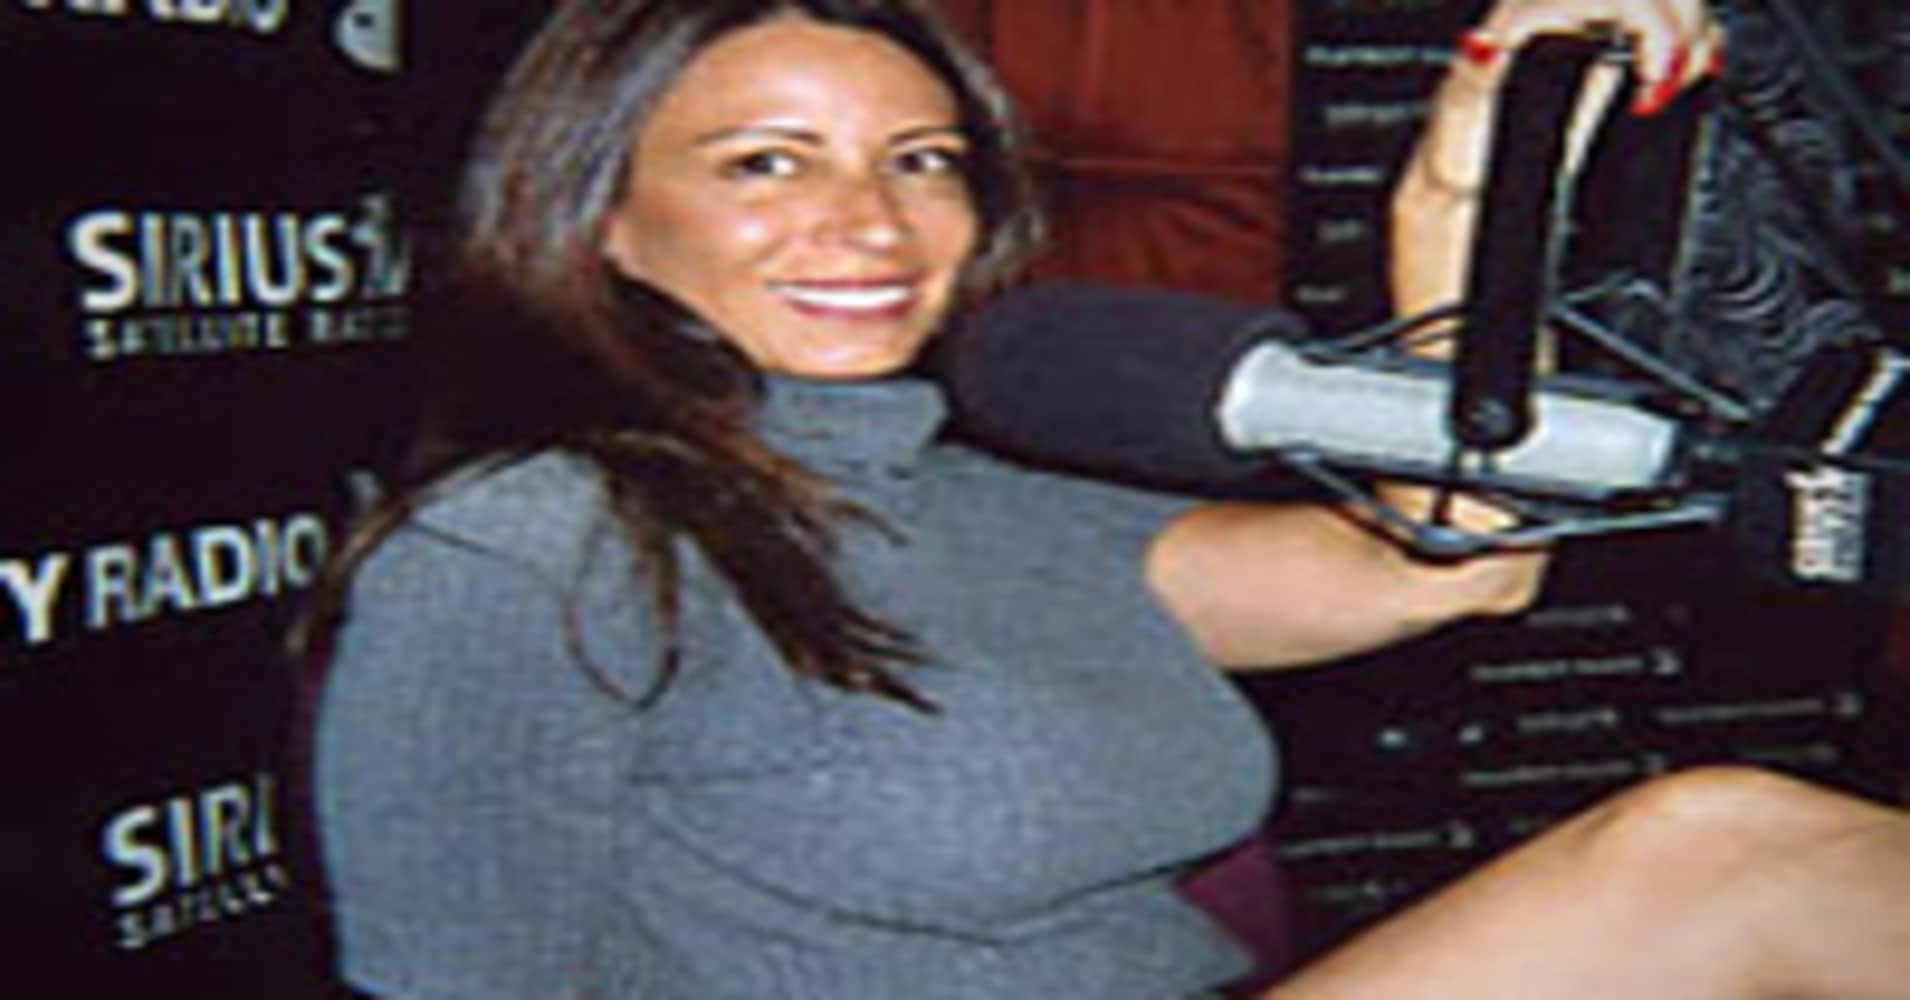 Christy Canyon Porn Star - Life After Porn: The Retirement Challenge